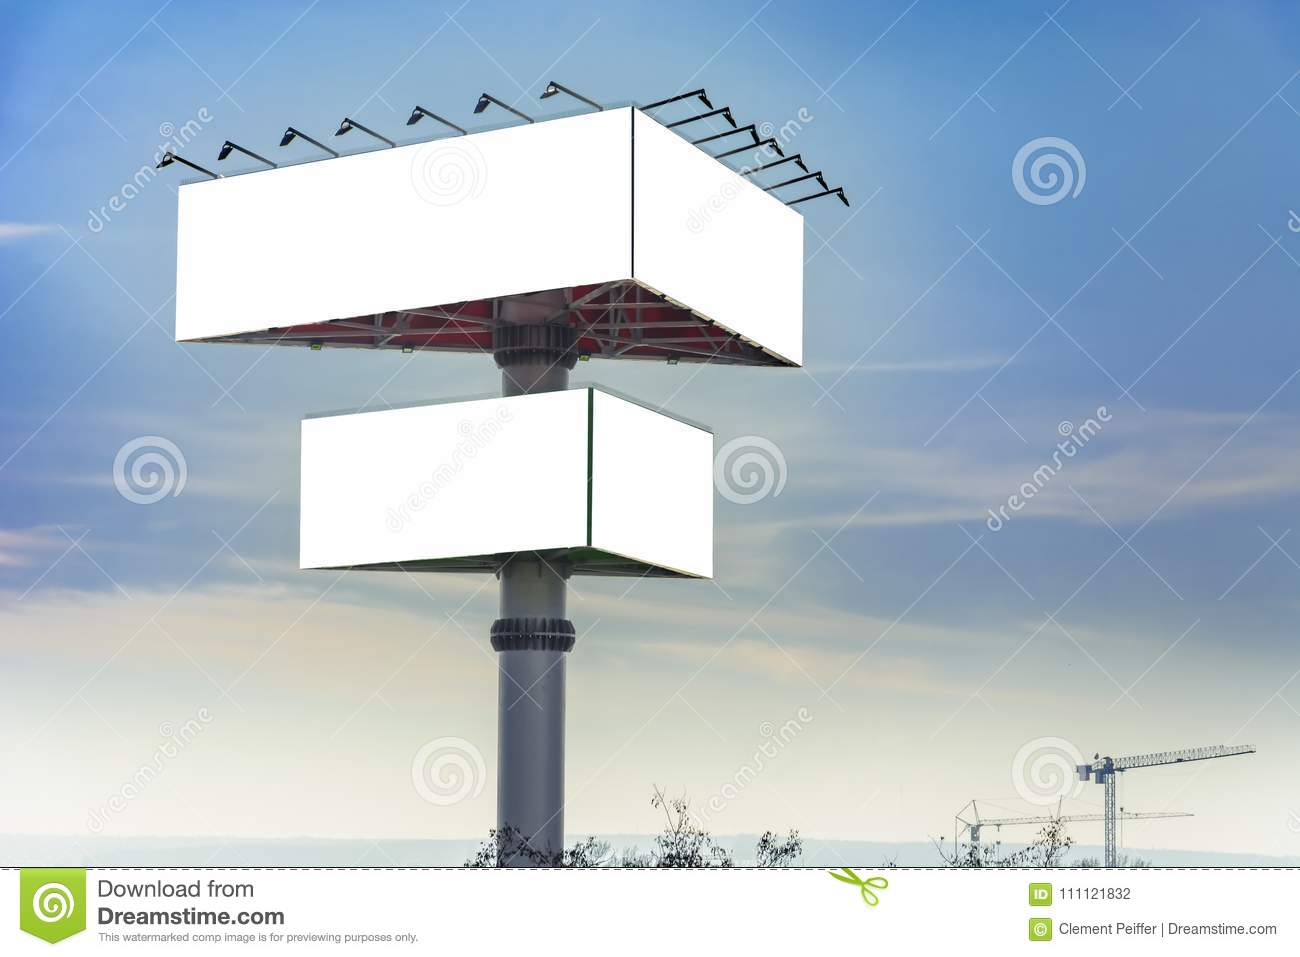 Triangle billboard